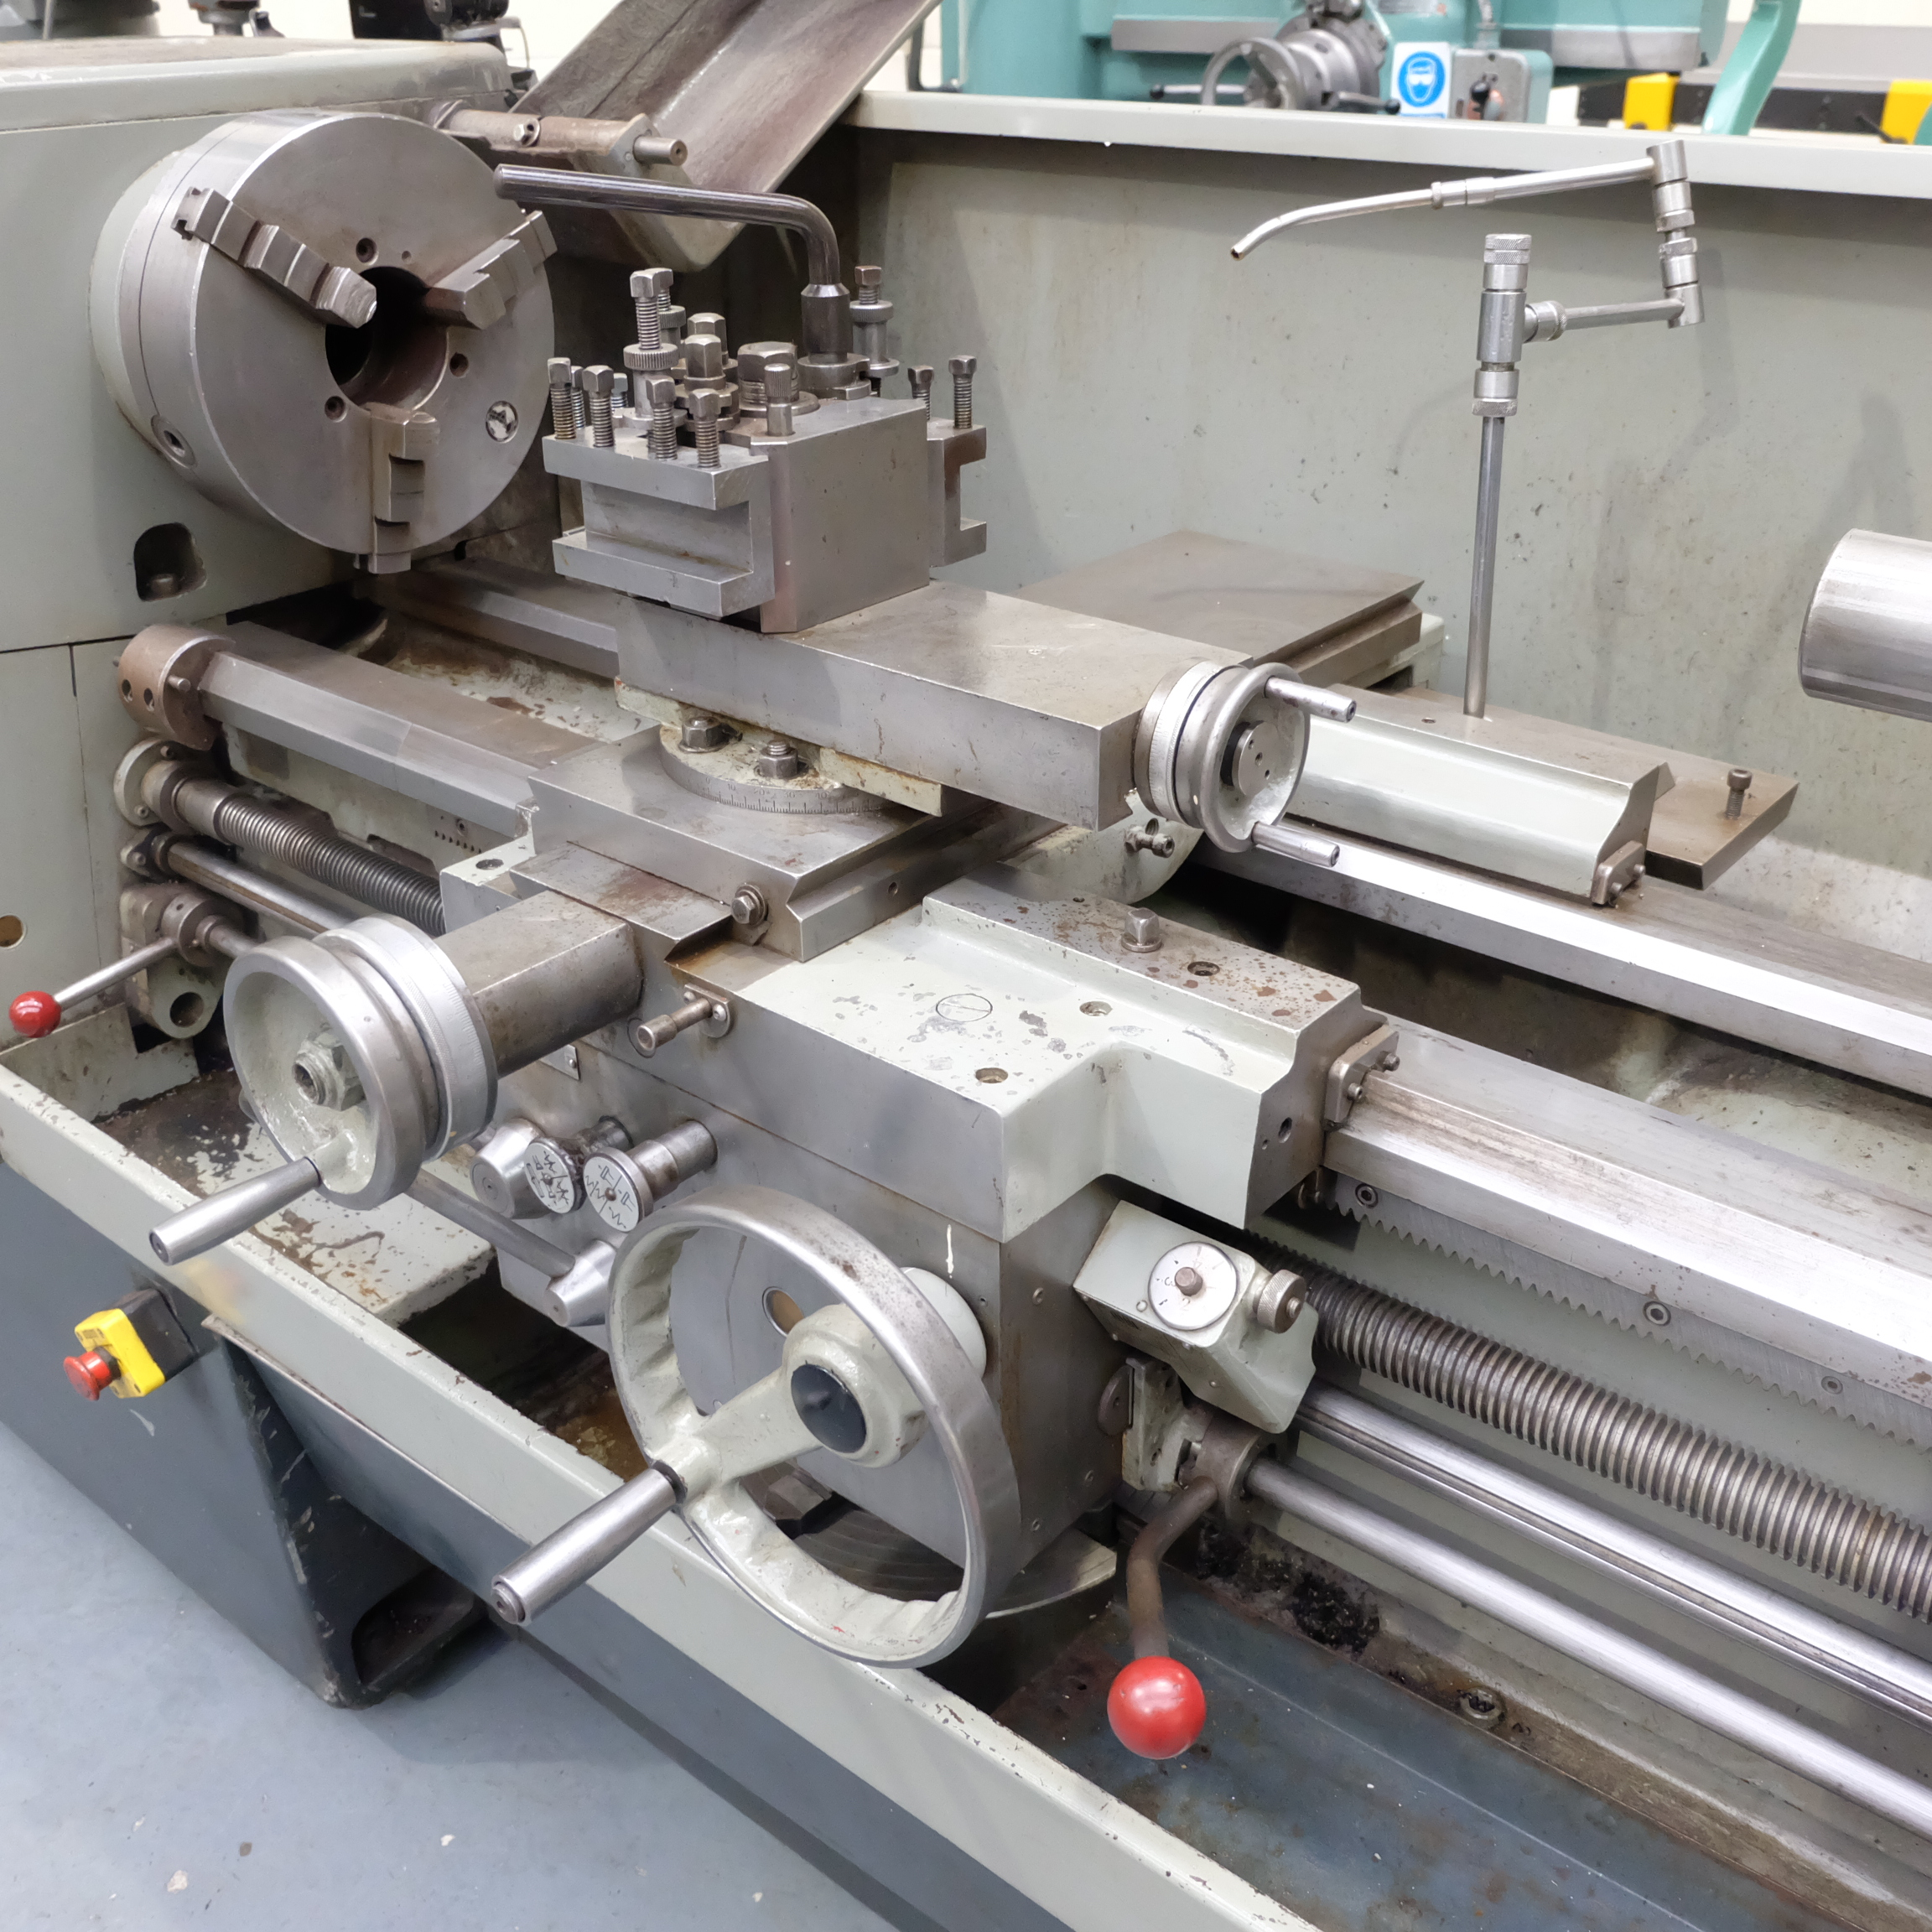 Colchester Mascot 1600 Gap Bed Centre Lathe. - Image 6 of 10